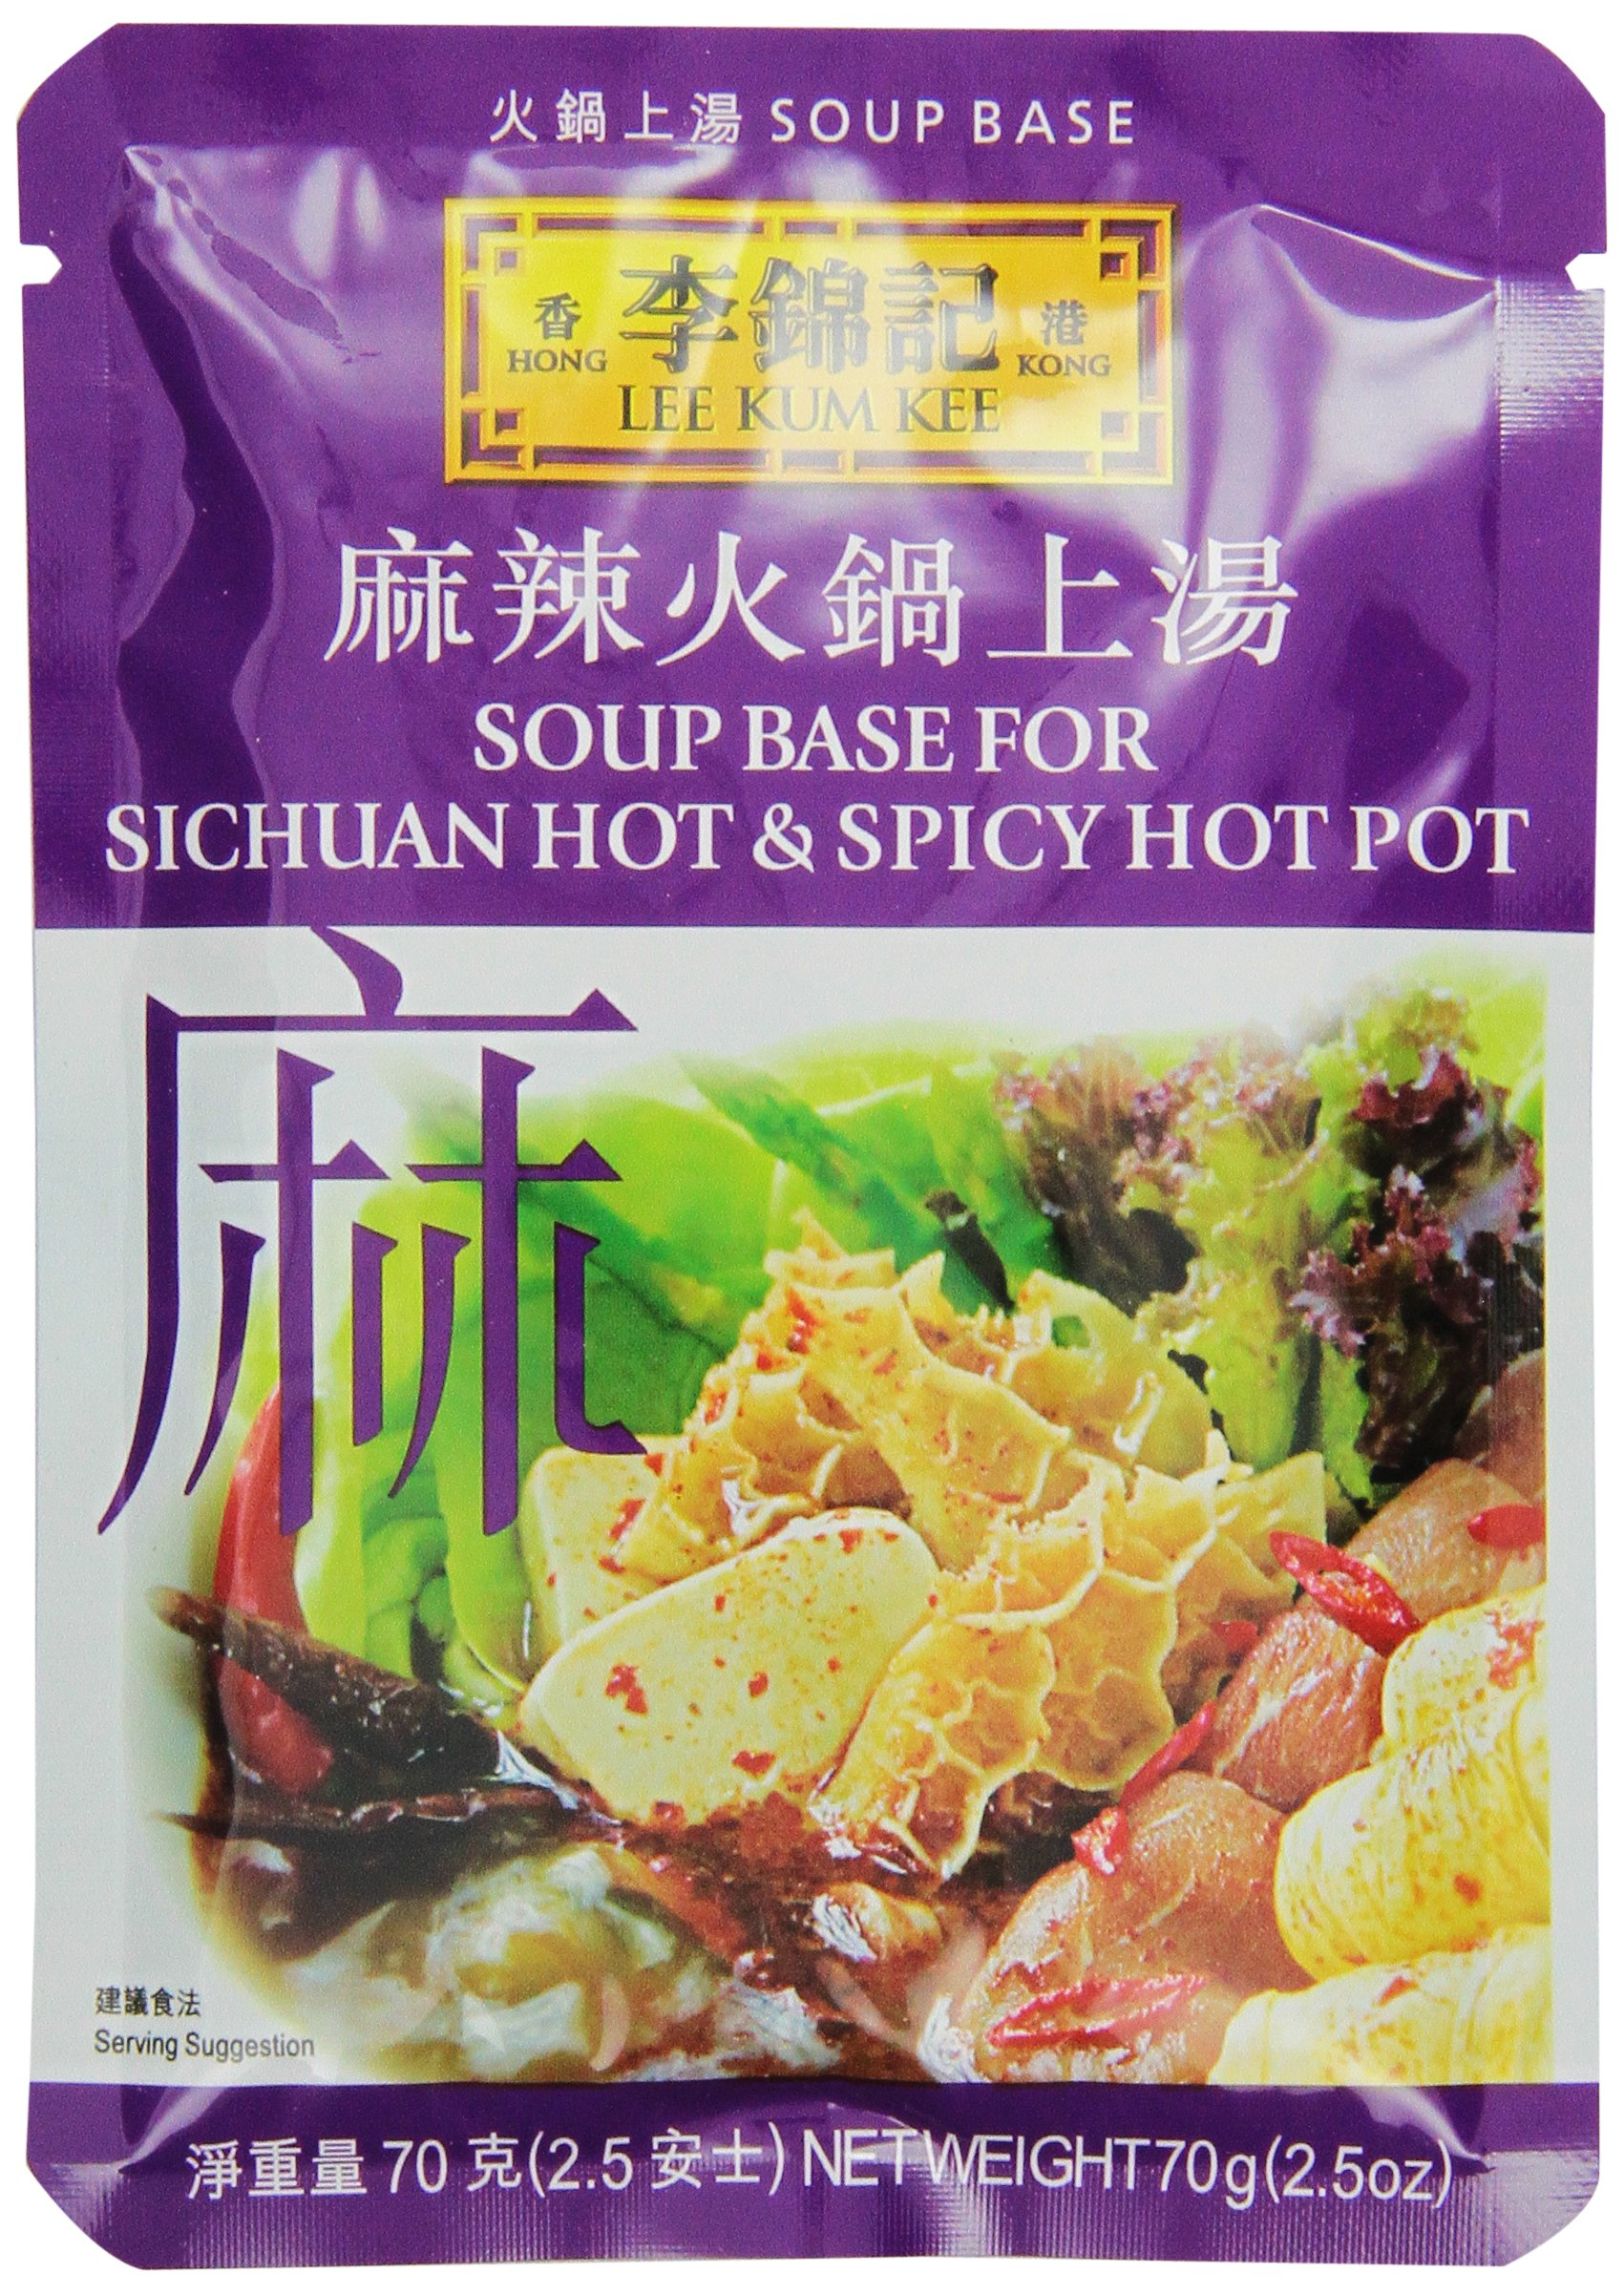 Lee Kum Kee Soup Base for Sichuan Hot and Spicy Hot Pot, 2.5 Ounce